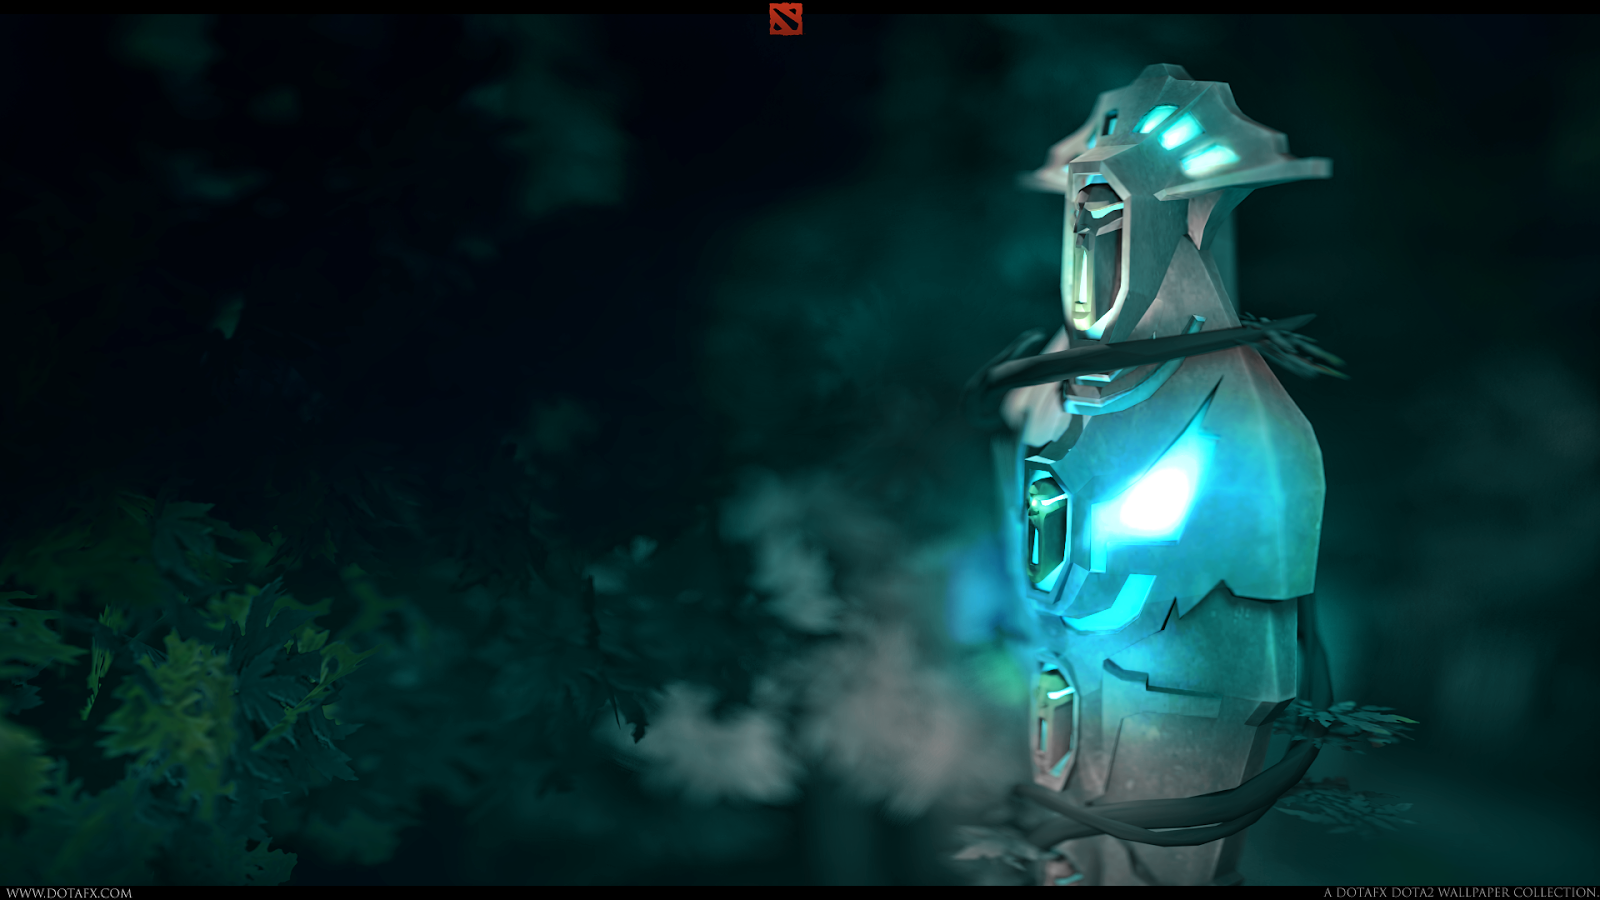 Dota 2 Wallpapers Dota 2 Wallpaper 1920x1080   The Radiant Tower by 1600x900